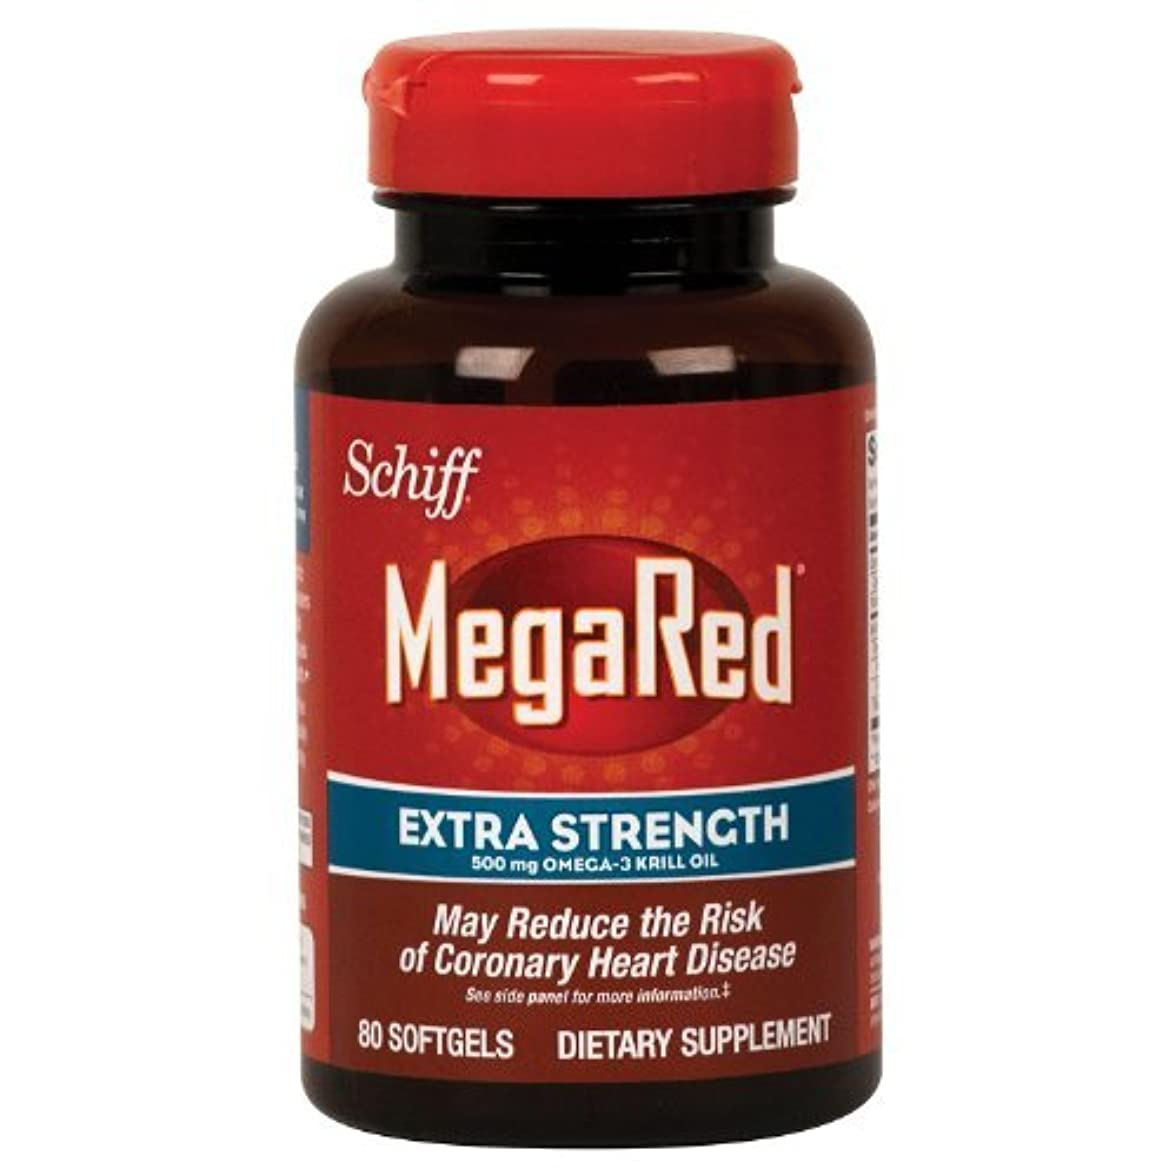 極めてつぶすミネラルSchiff Megared Extra Strength 500mg Omega-3 Krill Oil - 80 Softgels by Simply Right [並行輸入品]